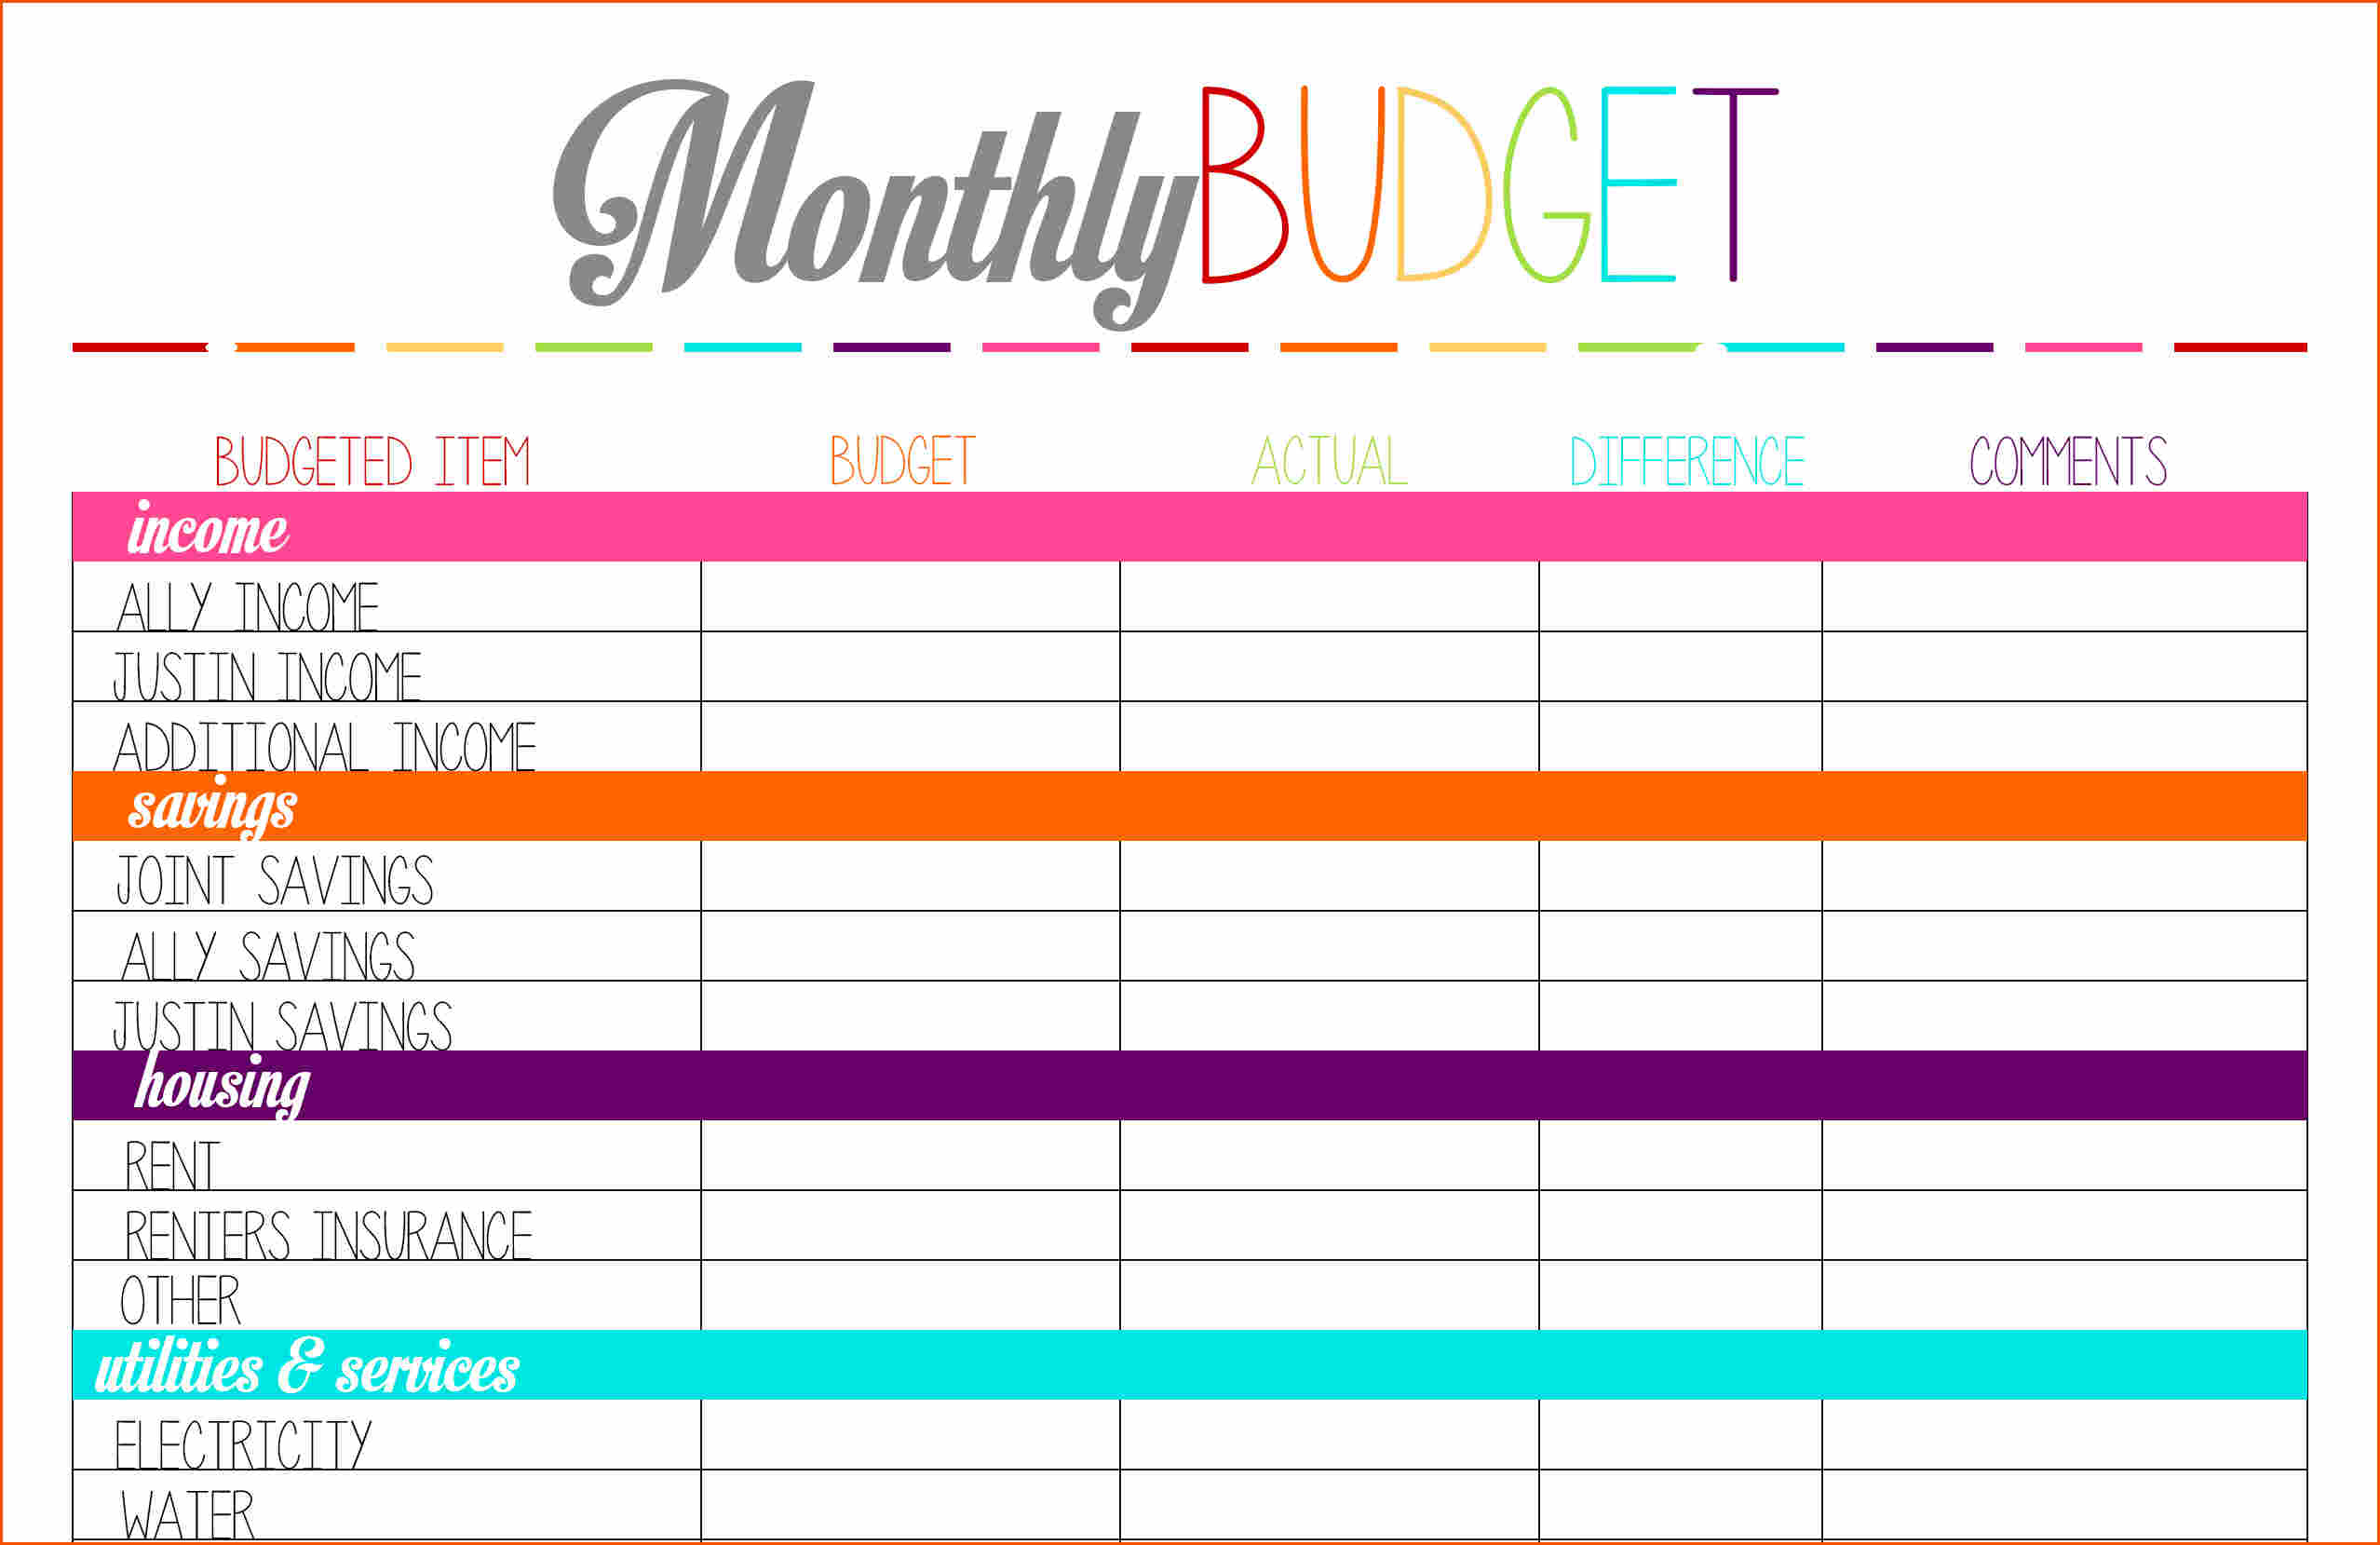 Budget Helper Worksheet - Koran.sticken.co | Budget Helper Worksheet Printable